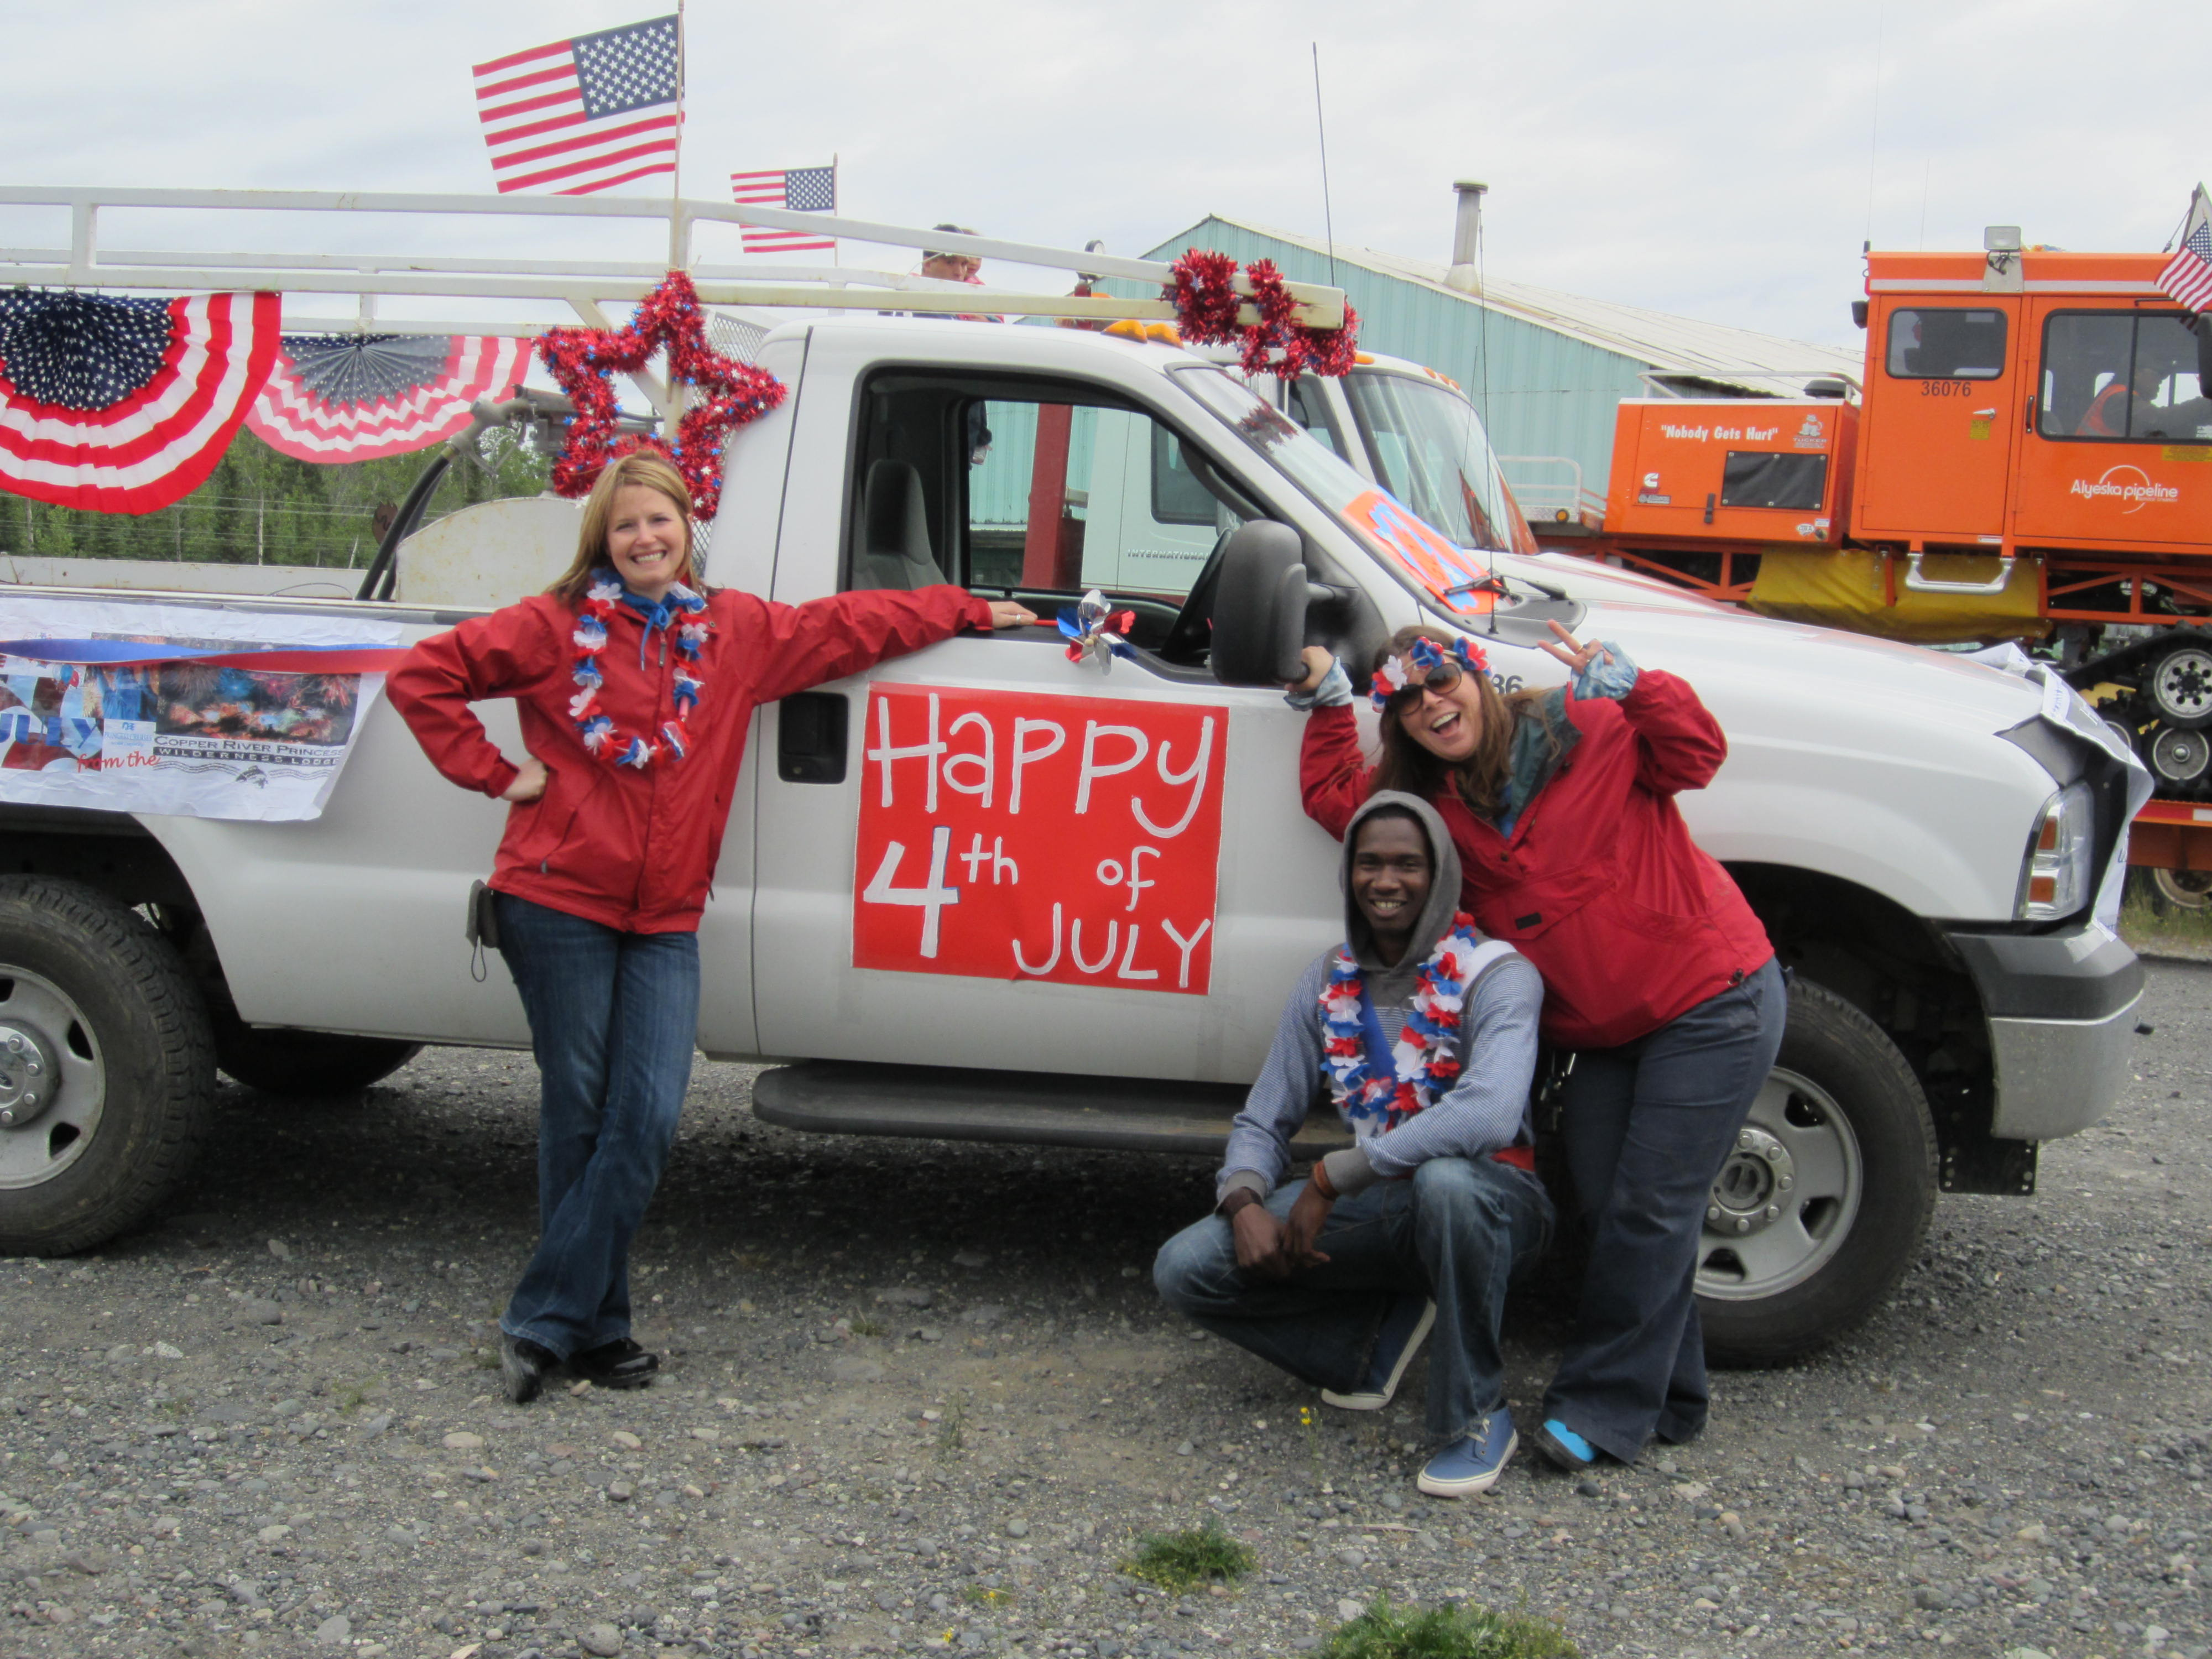 More employees posing with the red white and blue decorated truck for the Fourth of July Parade.